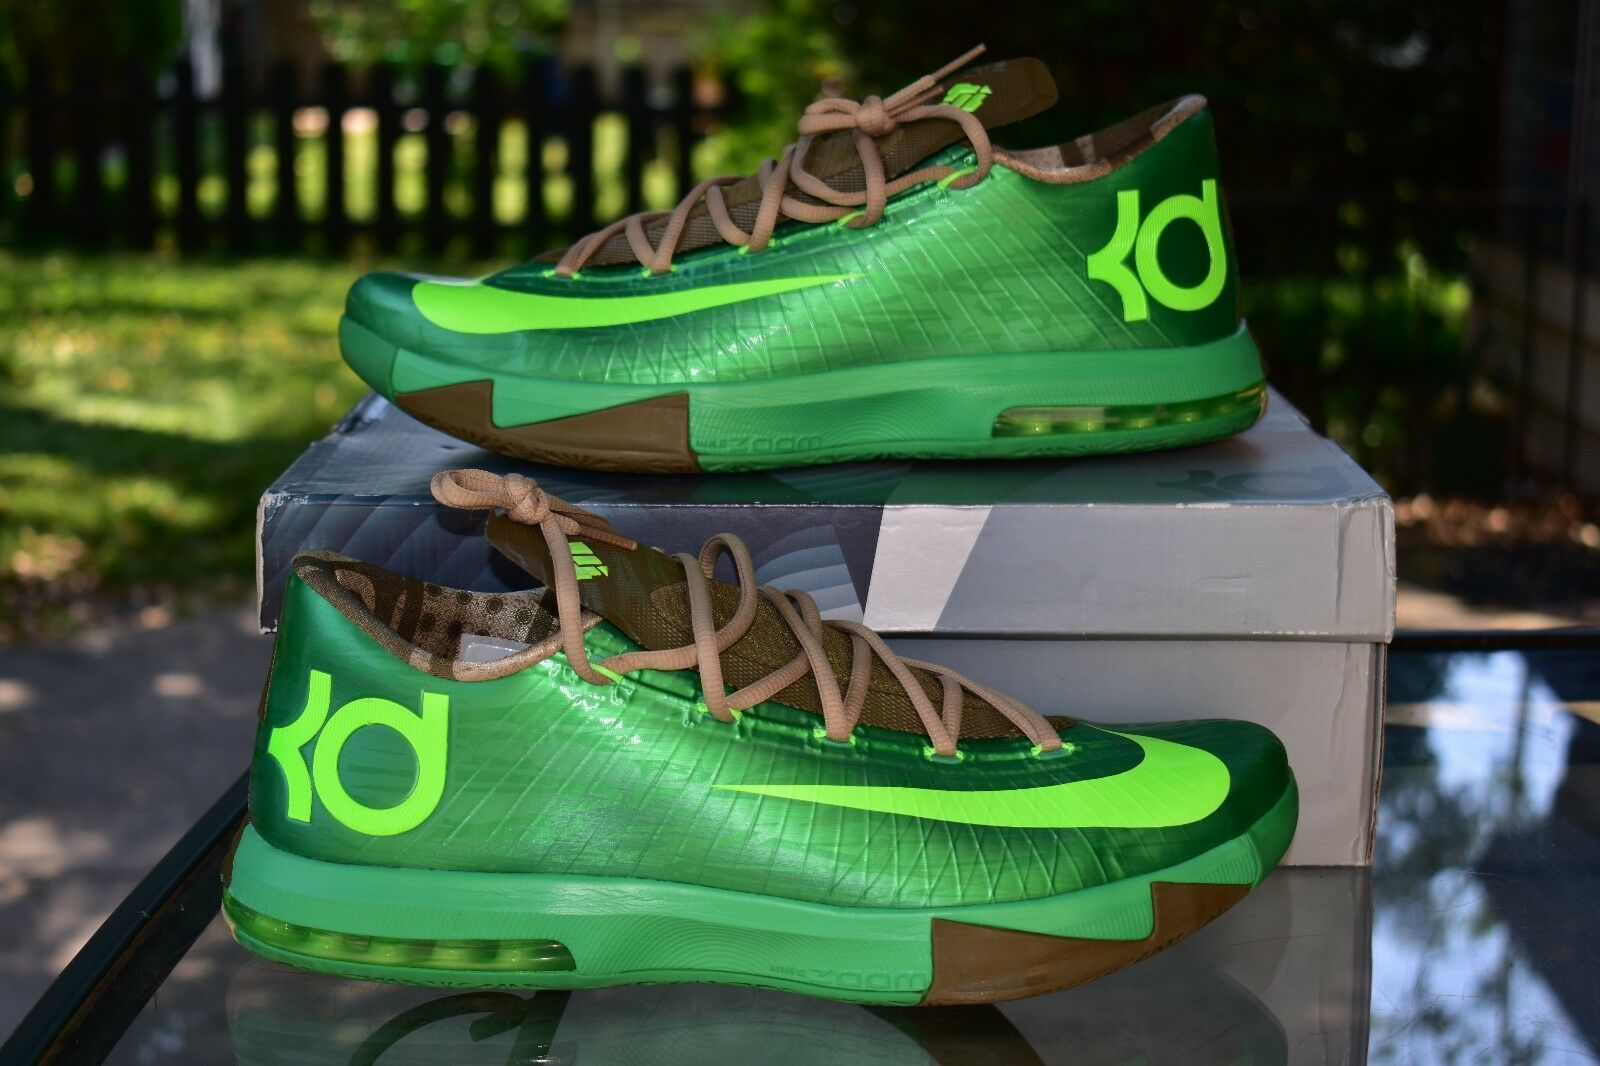 c927e58b90b9 Nike KD VI 6 6 6 Gamma Green - Flash Lime Bamboo 599424-301 Men s ...